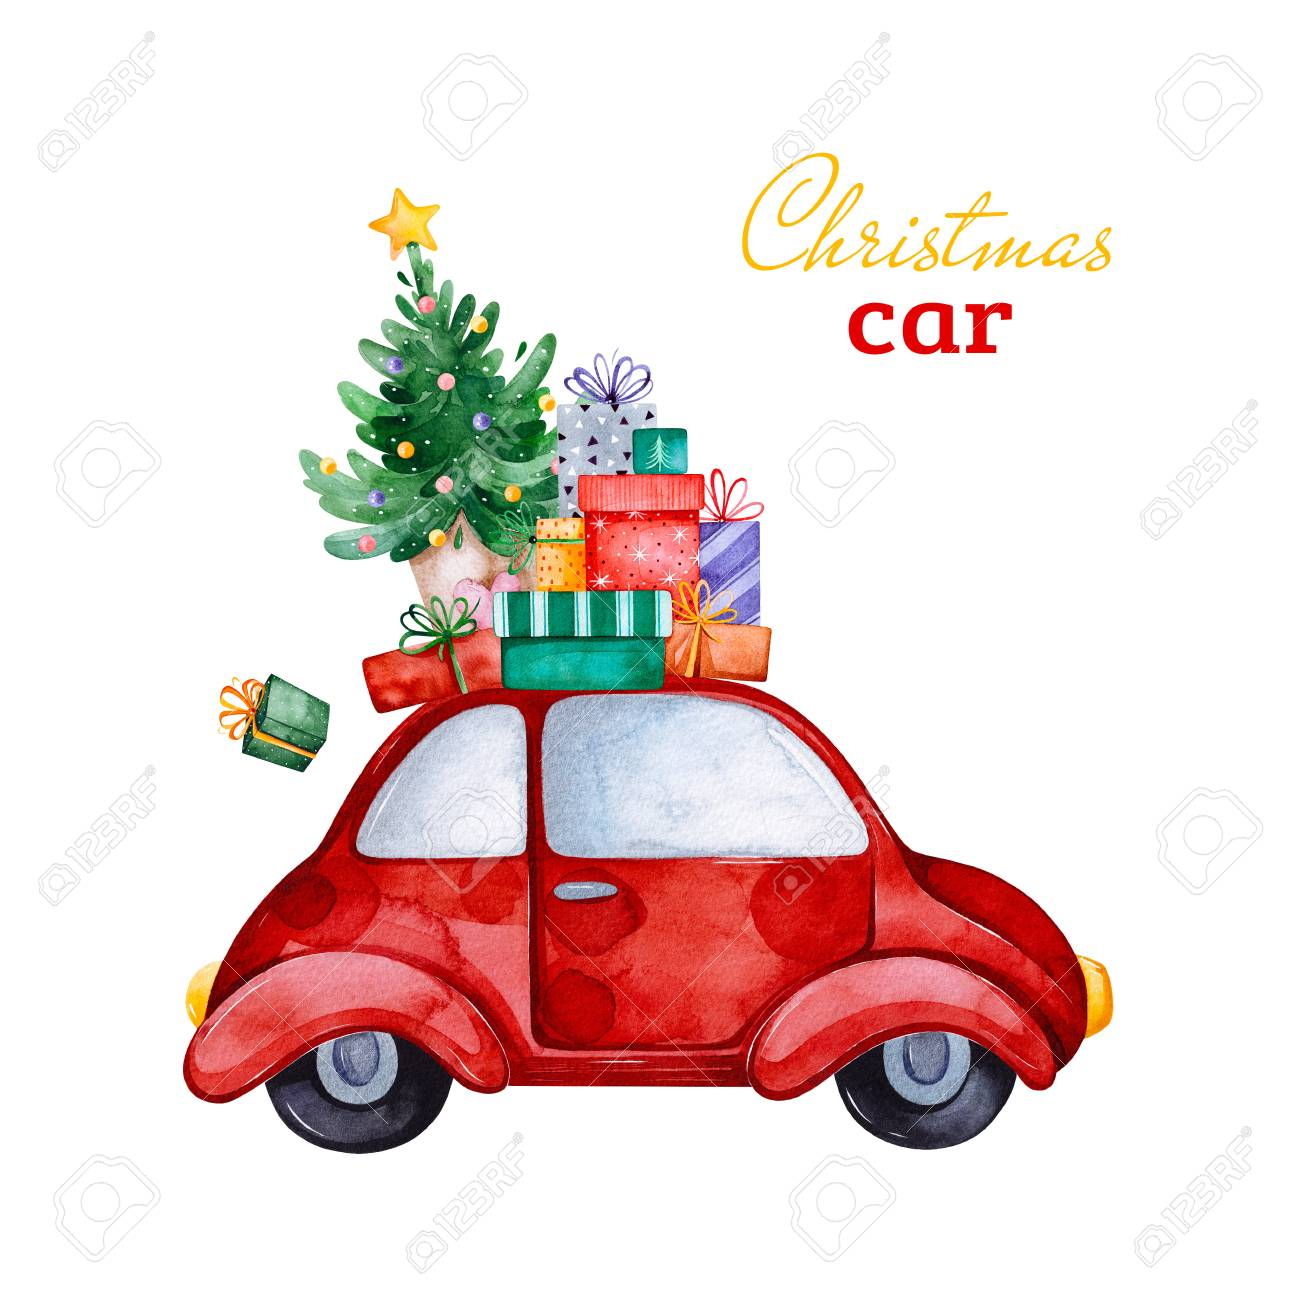 Christmas Abstract Retro Car With Christmas Tree Gifts And Other Stock Photo Picture And Royalty Free Image Image 118653070